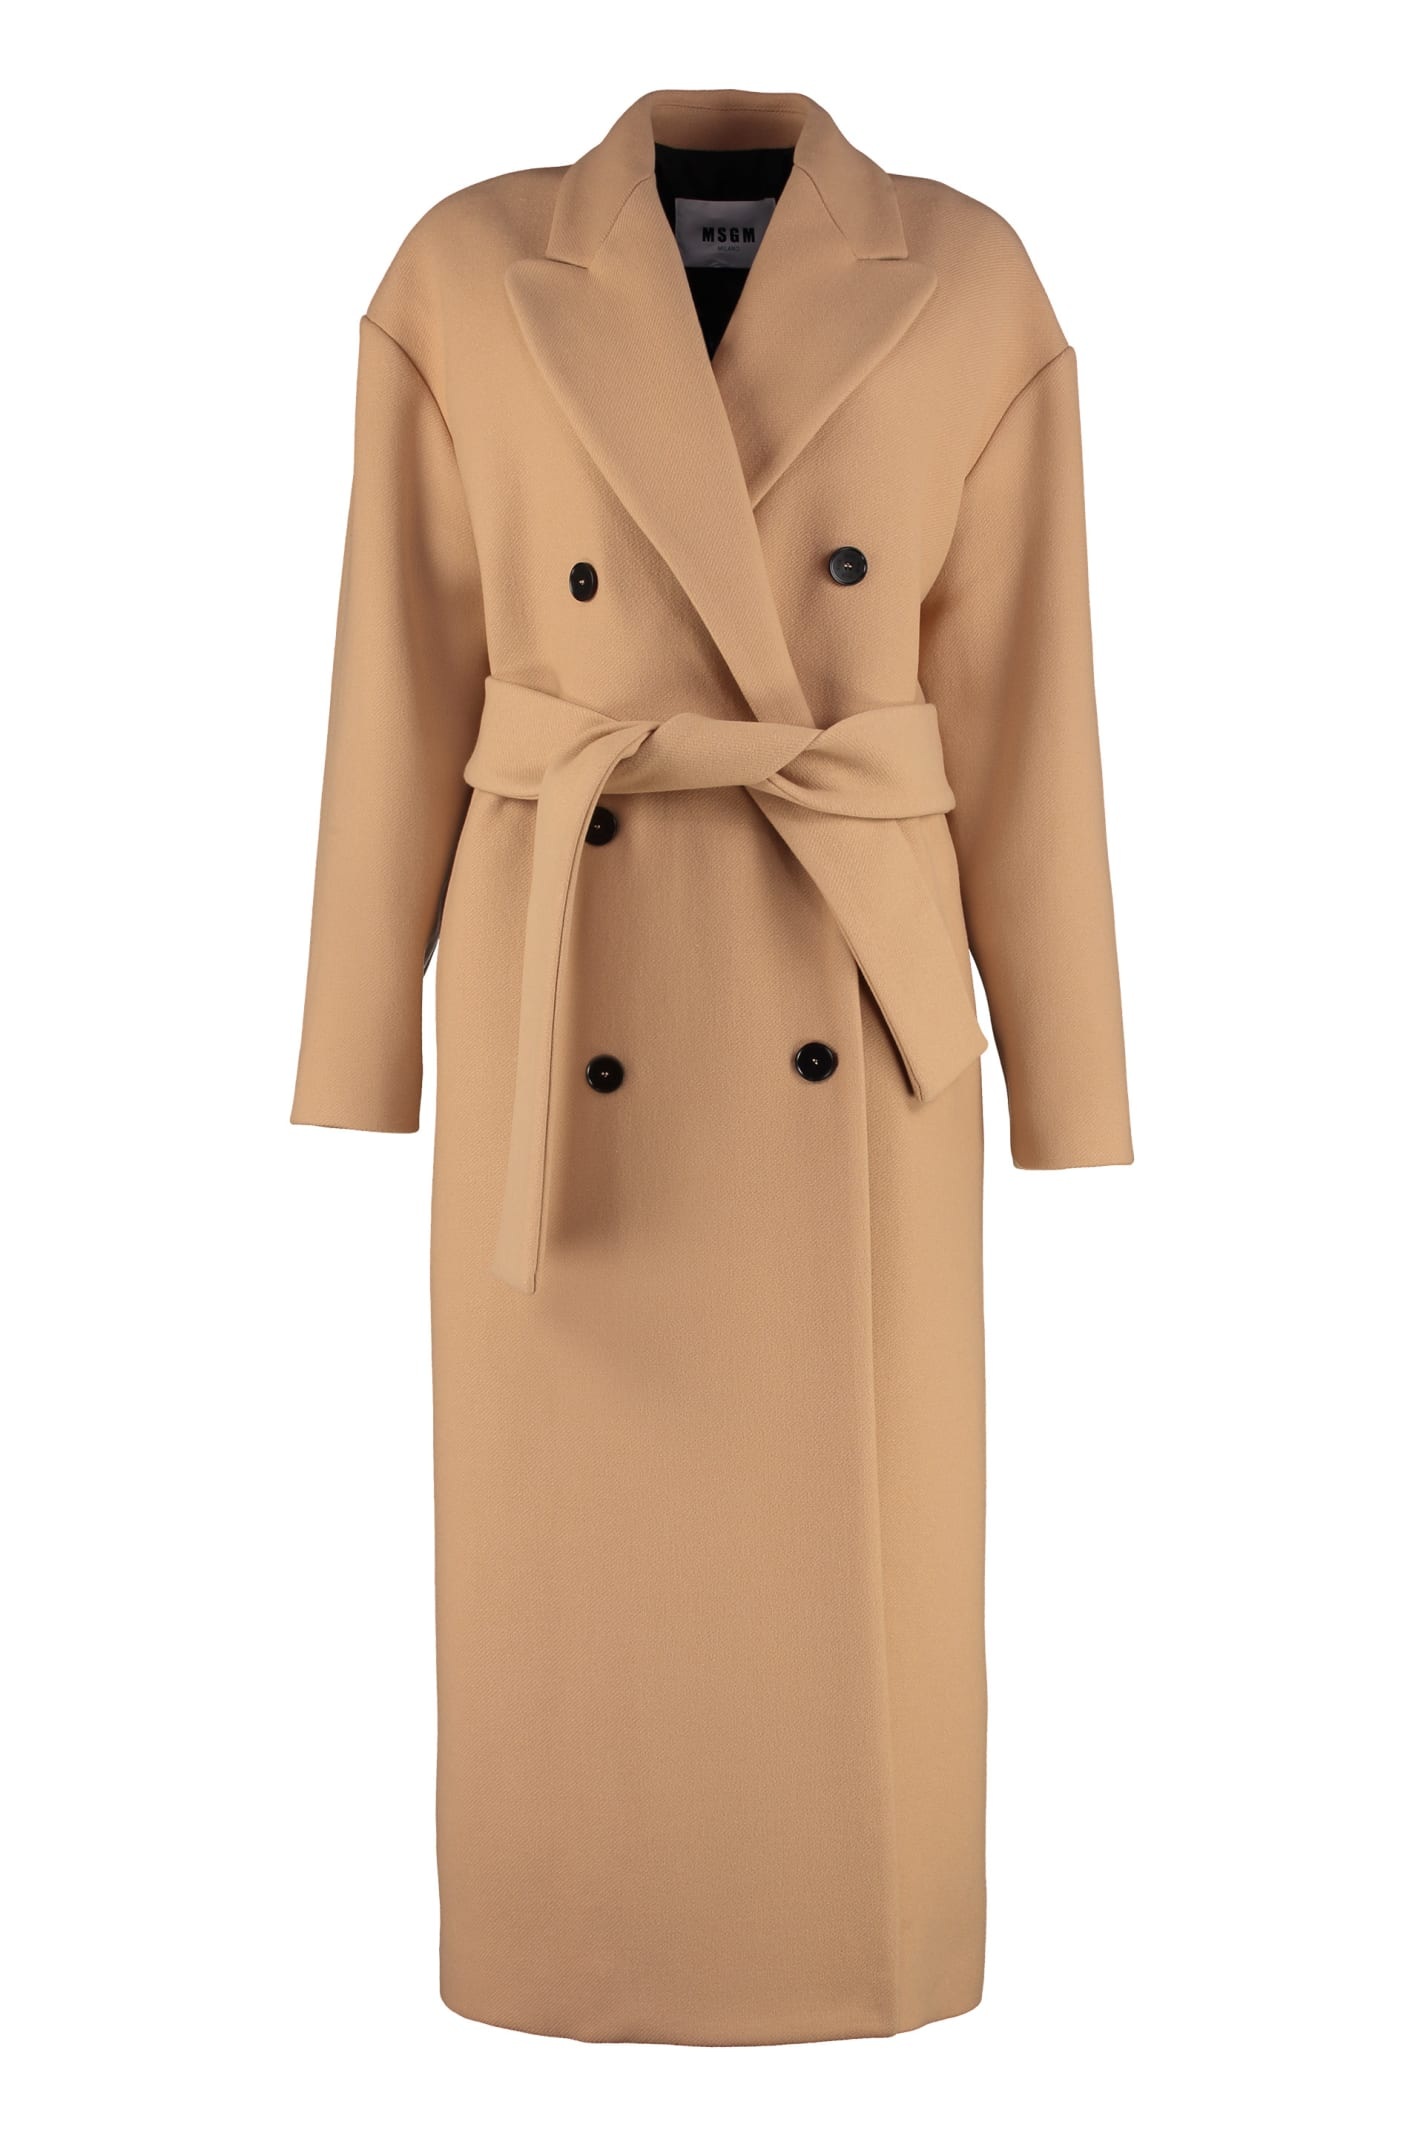 Photo of  MSGM Virgin Wool Long Coat- shop MSGM jackets online sales